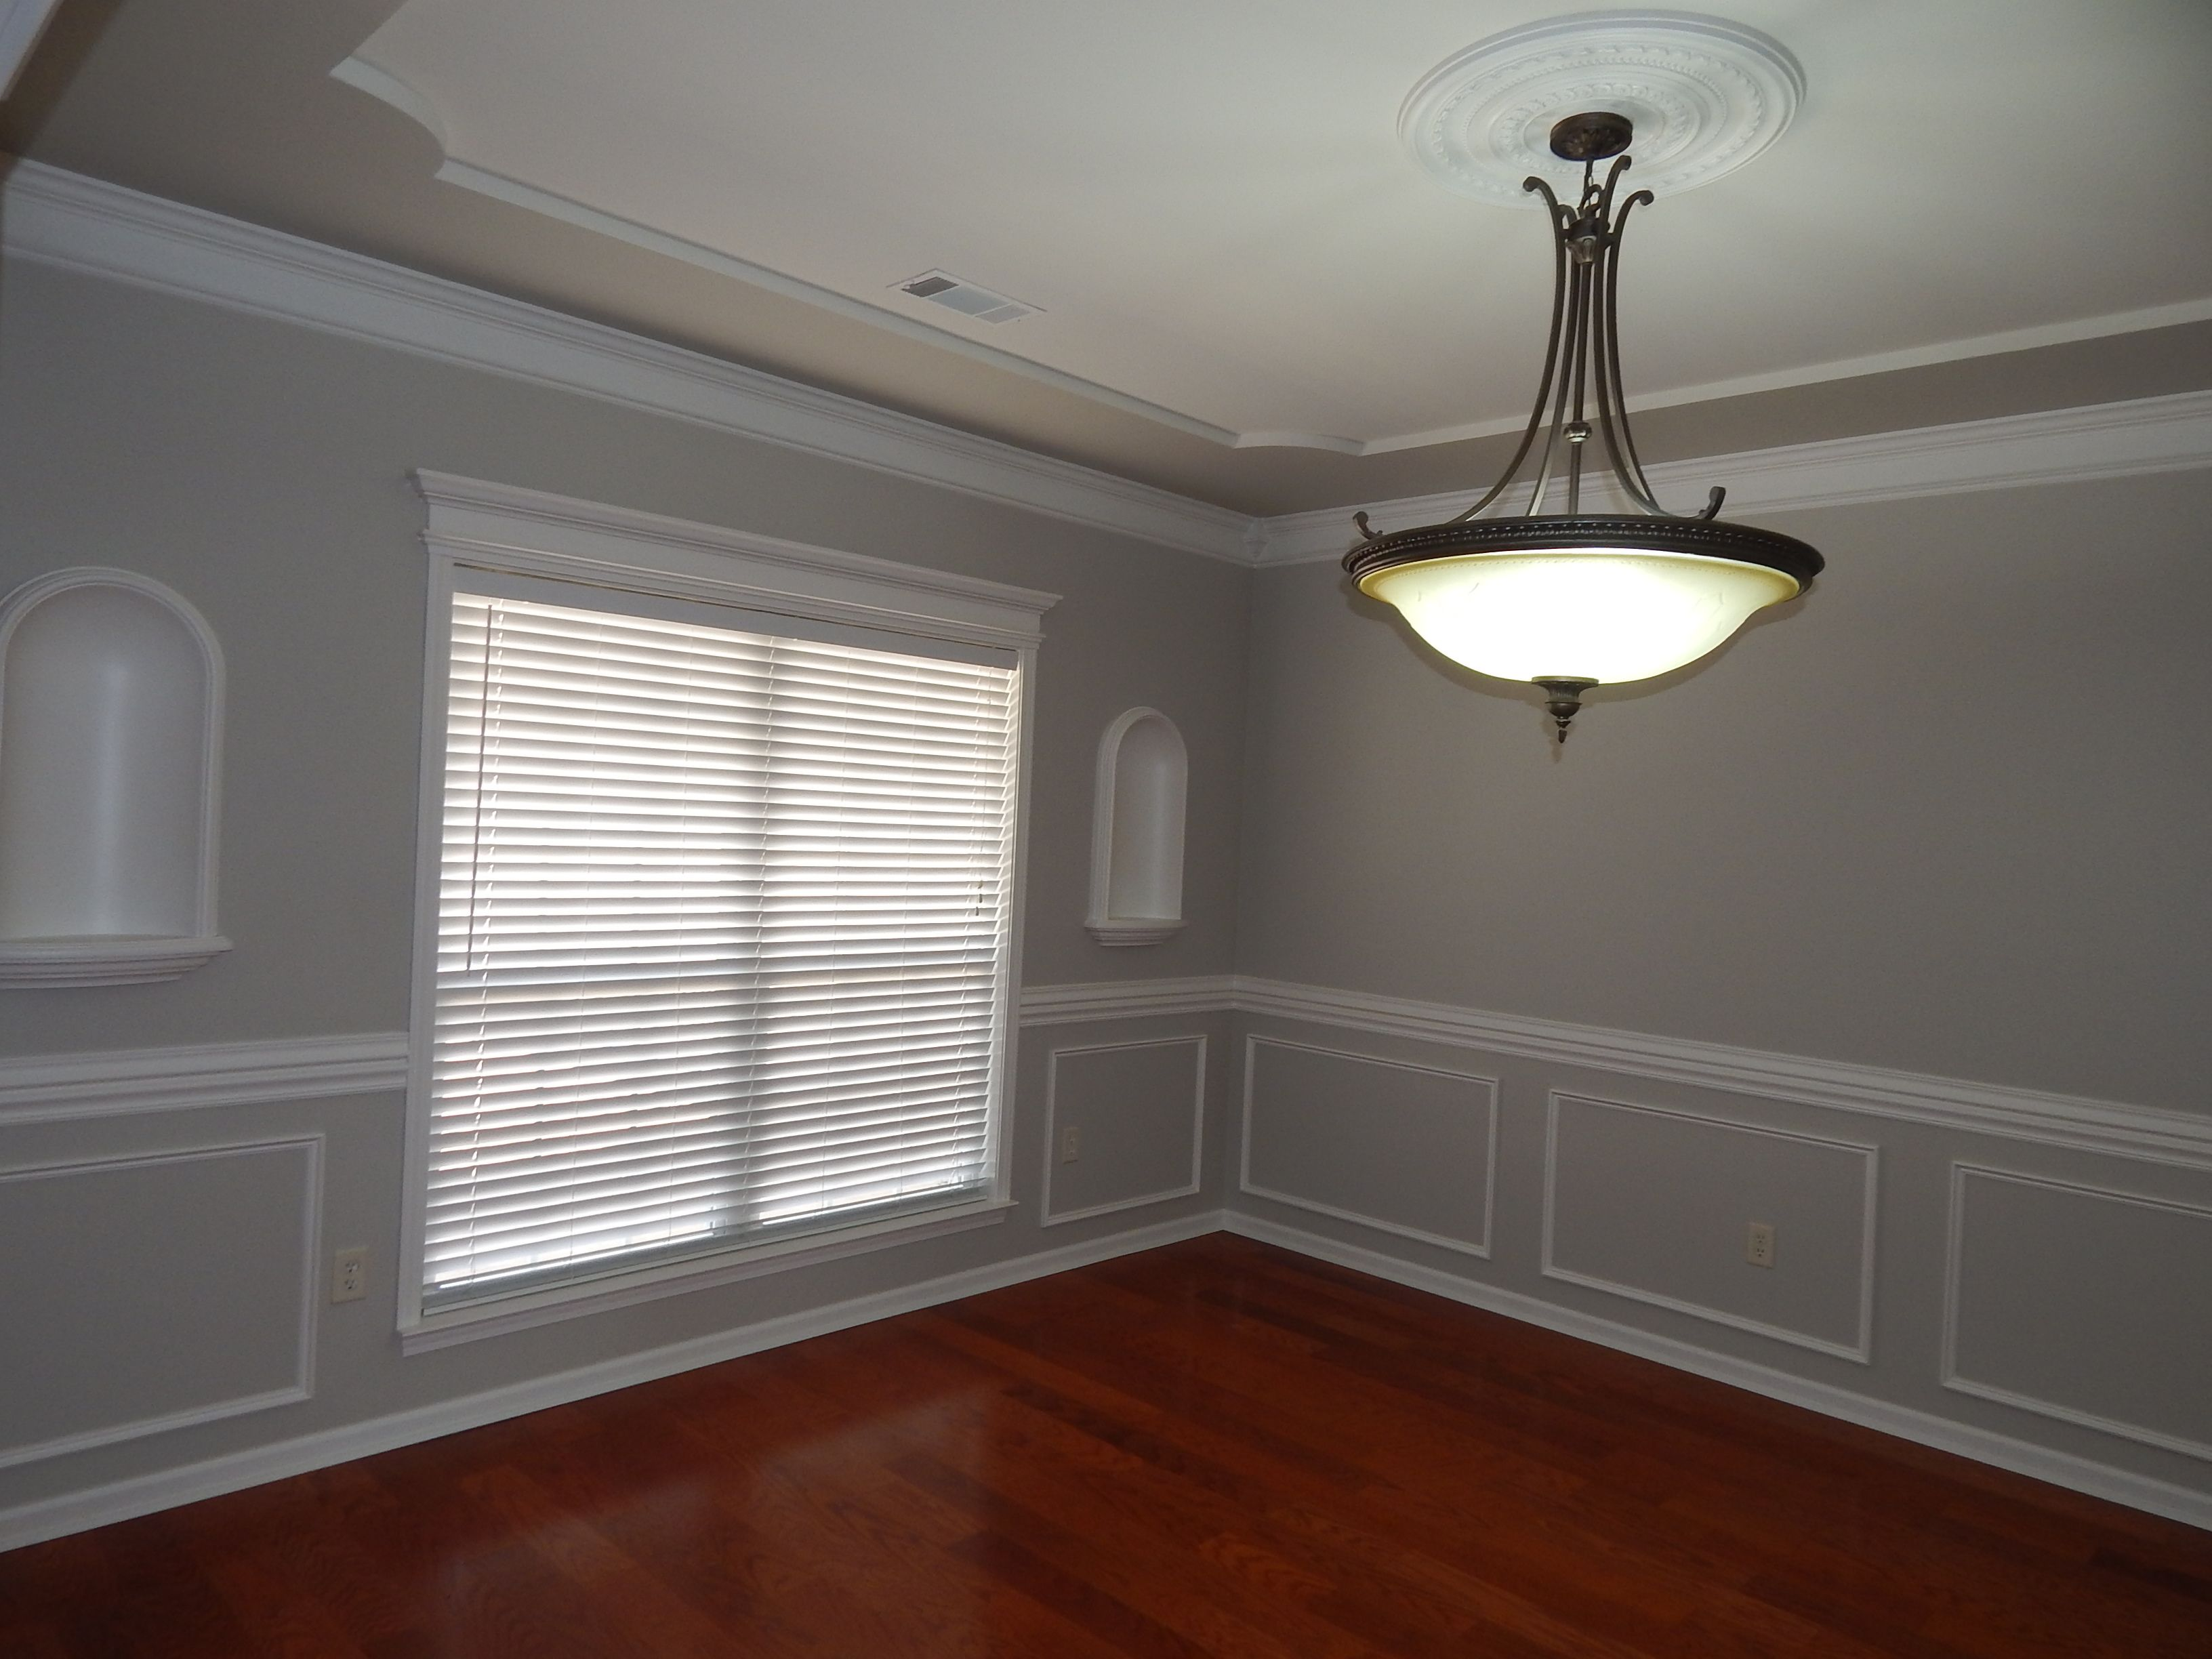 Best Walls Sherwin Williams Worldly Gray Sw 7043 Trim Sherwin 400 x 300